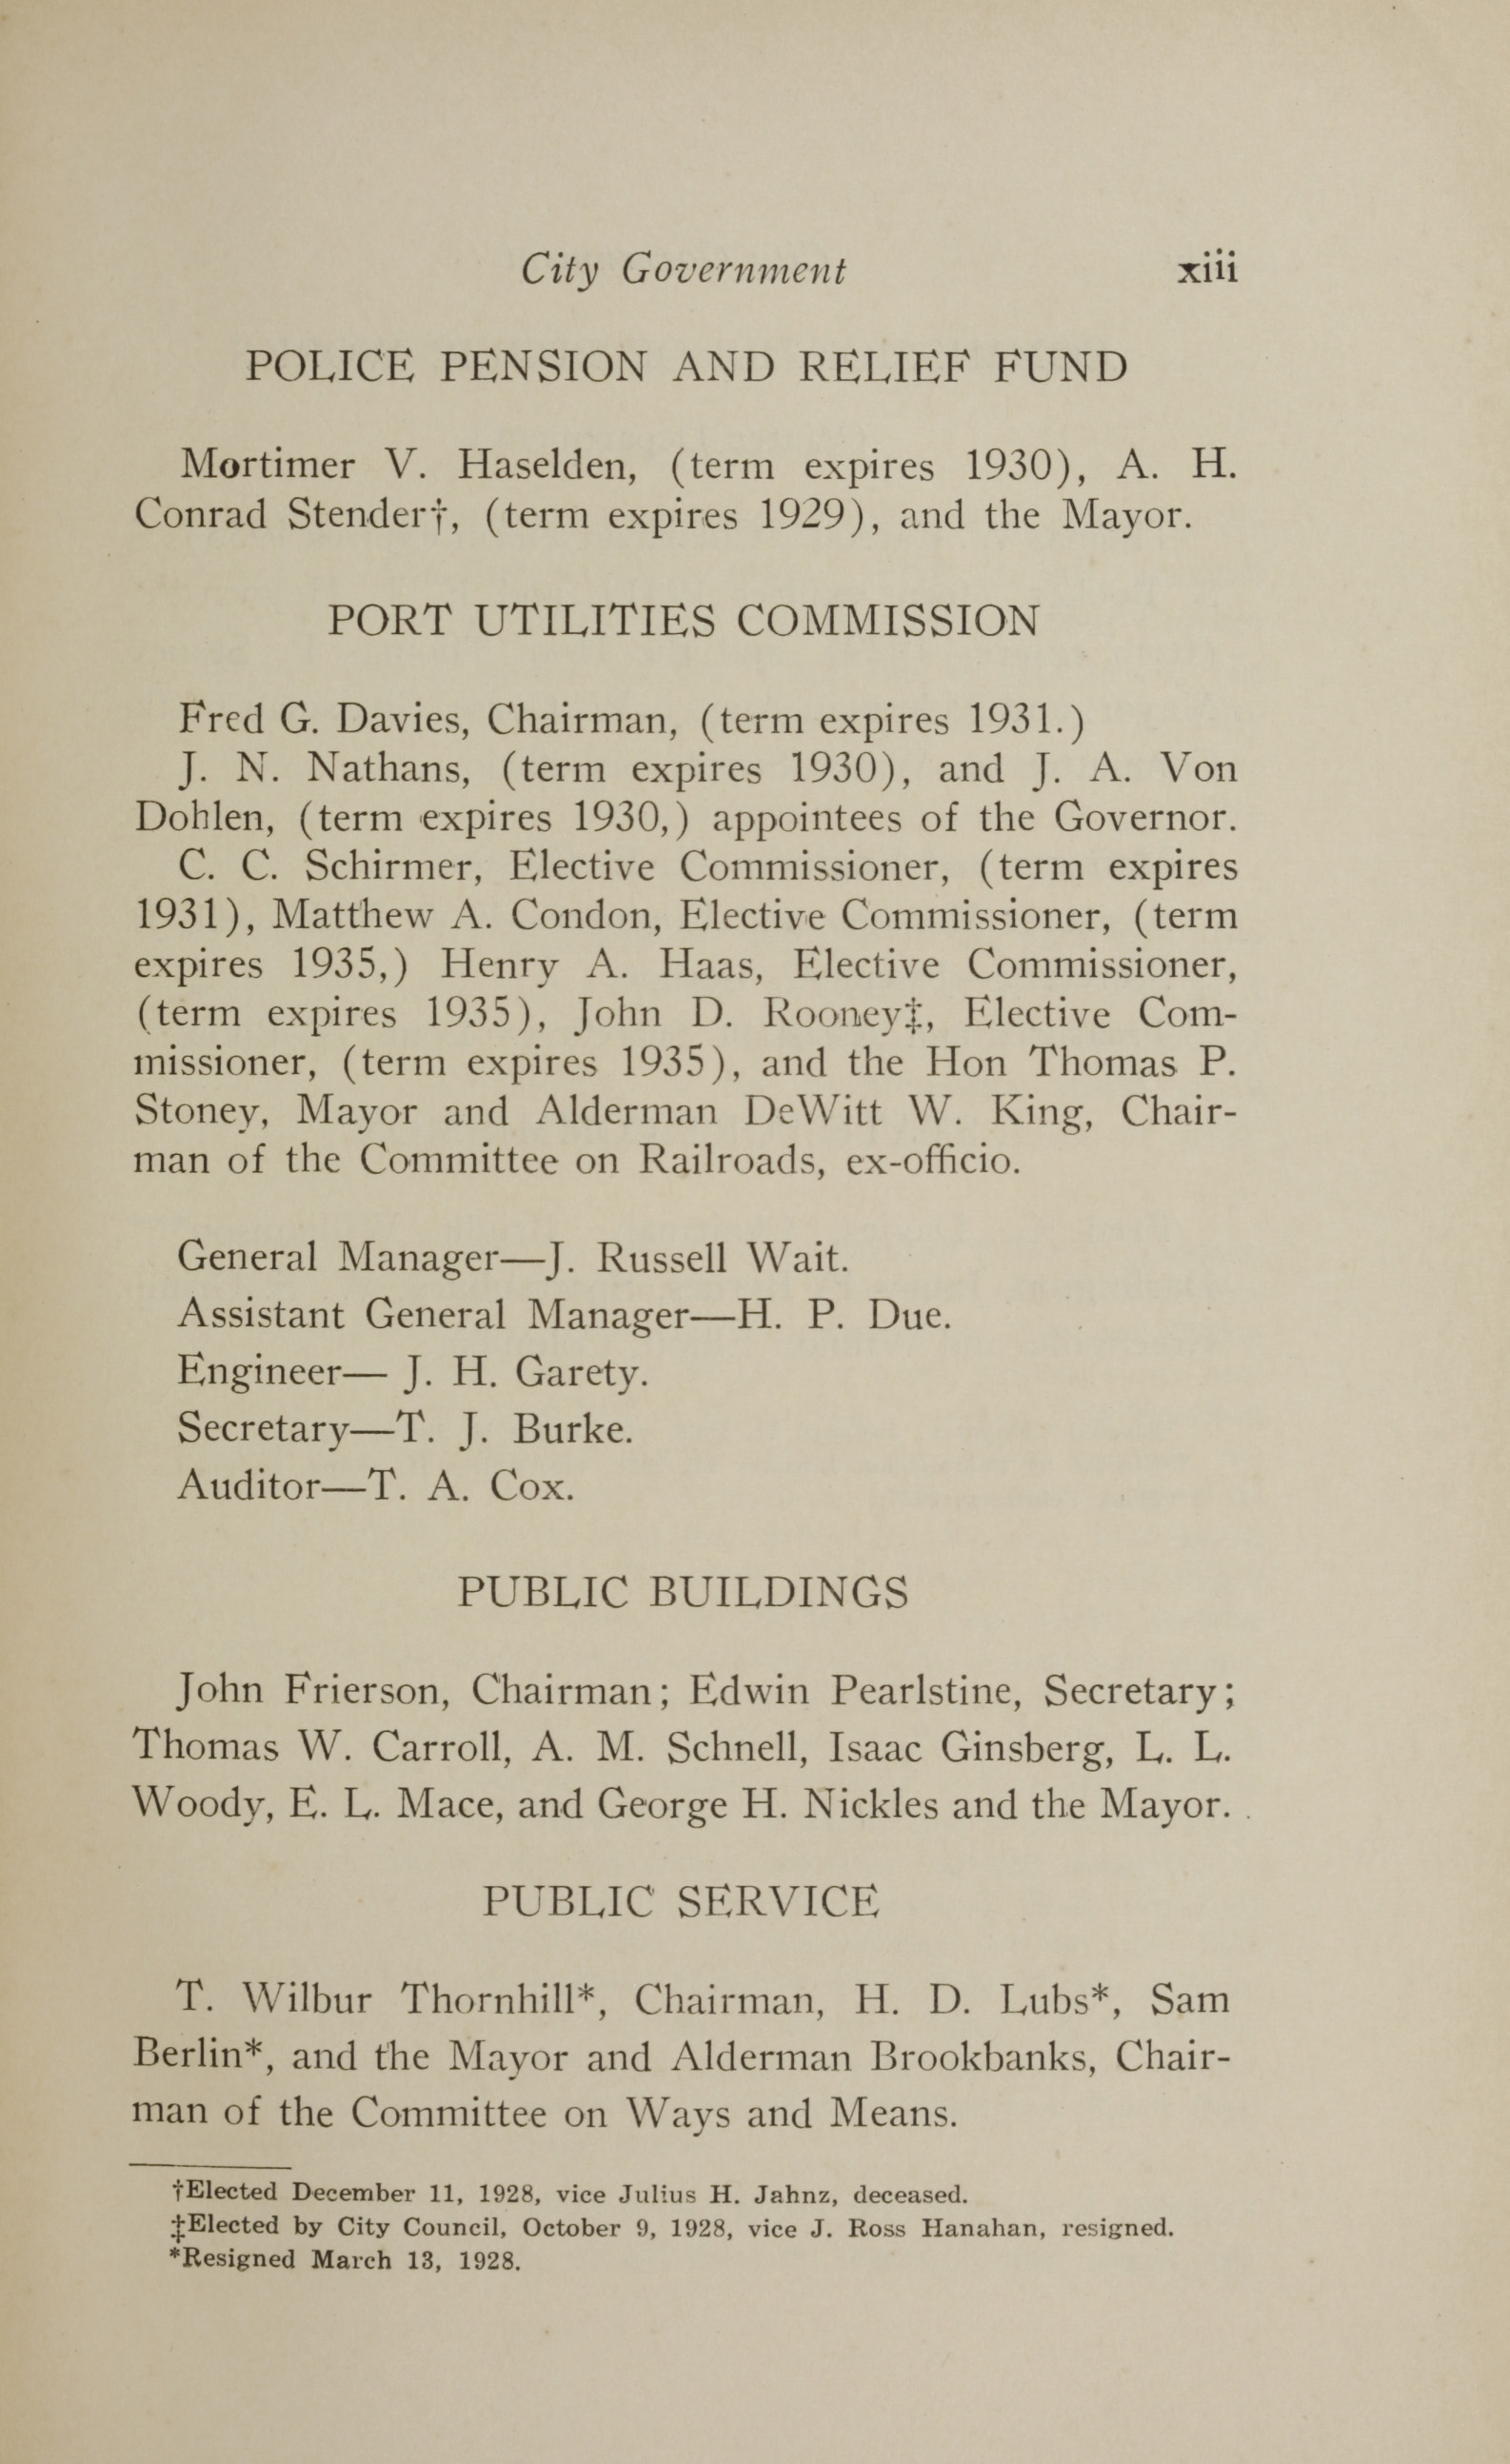 Charleston Yearbook, 1928, page xiii